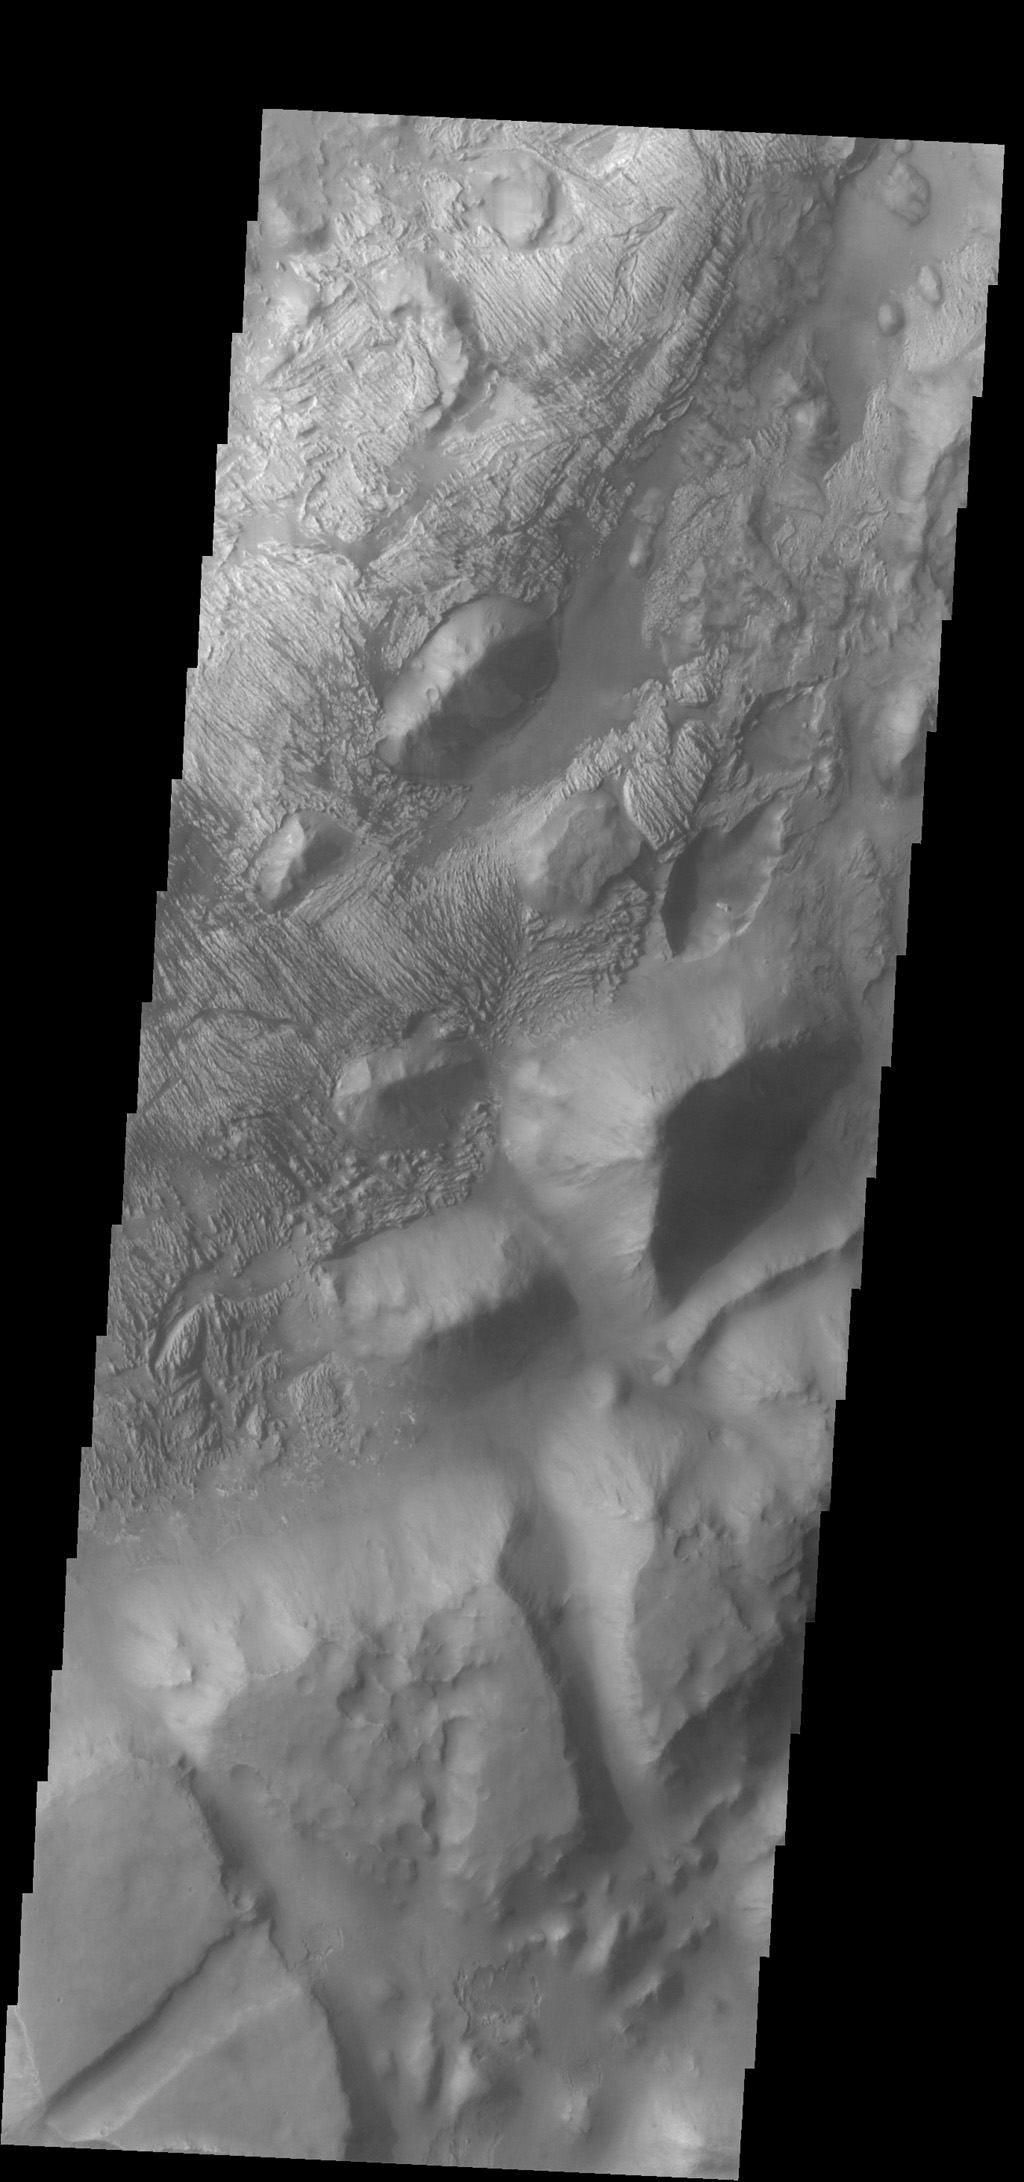 Several different surface textures are present on the lower elevations of Iani Chaos in this image from NASA's 2001 Mars Odyssey spacecraft.